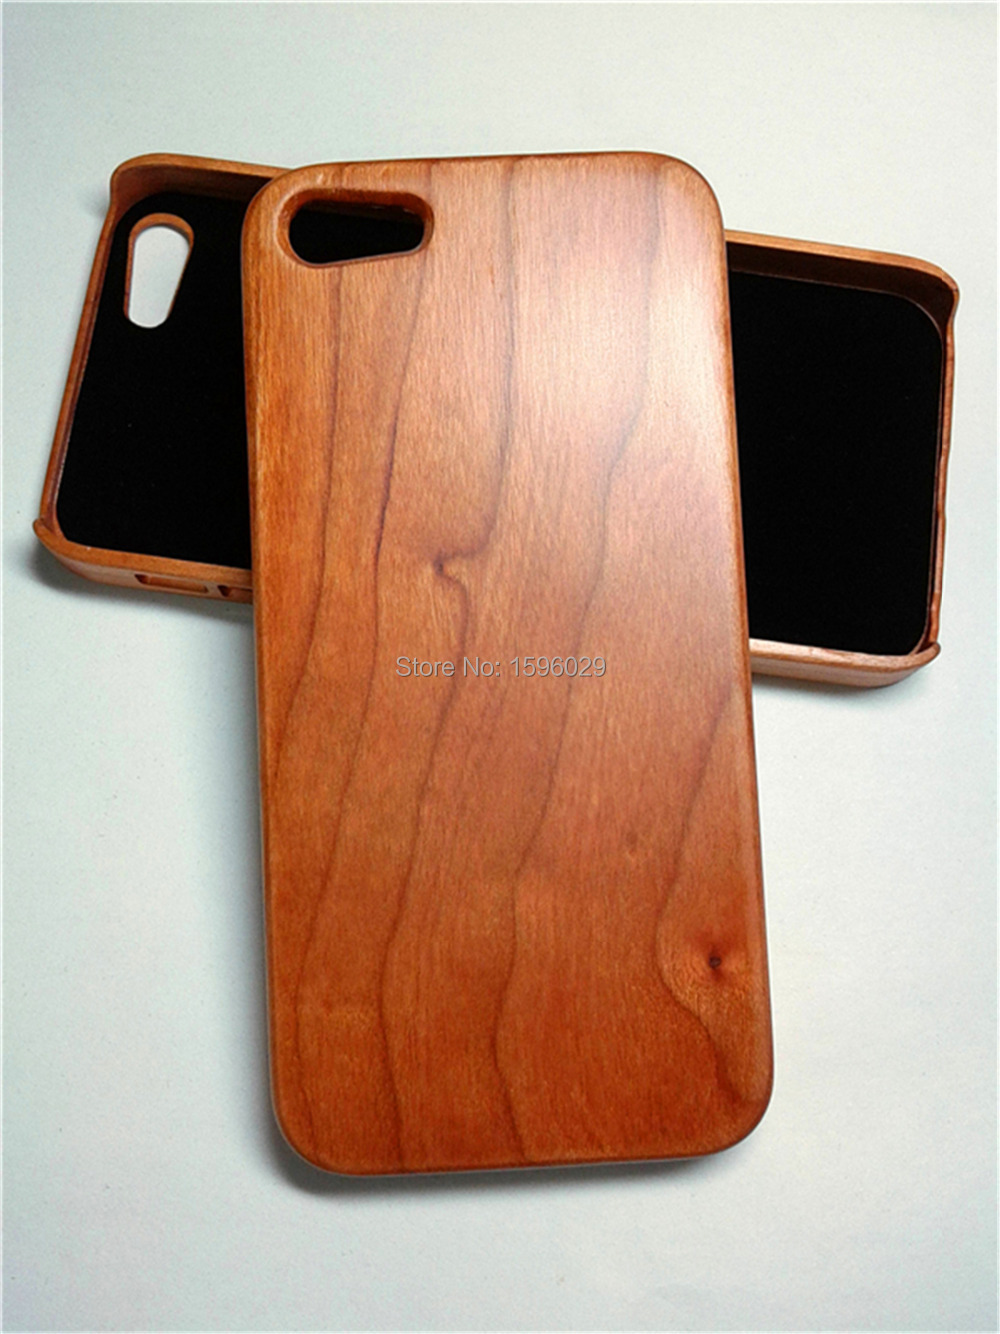 Big Sale100% Original Natural Cherry Wood Case for Apple iphone 5 5S 5G Cheap Ultra Thin Wooden Style Skin(China (Mainland))